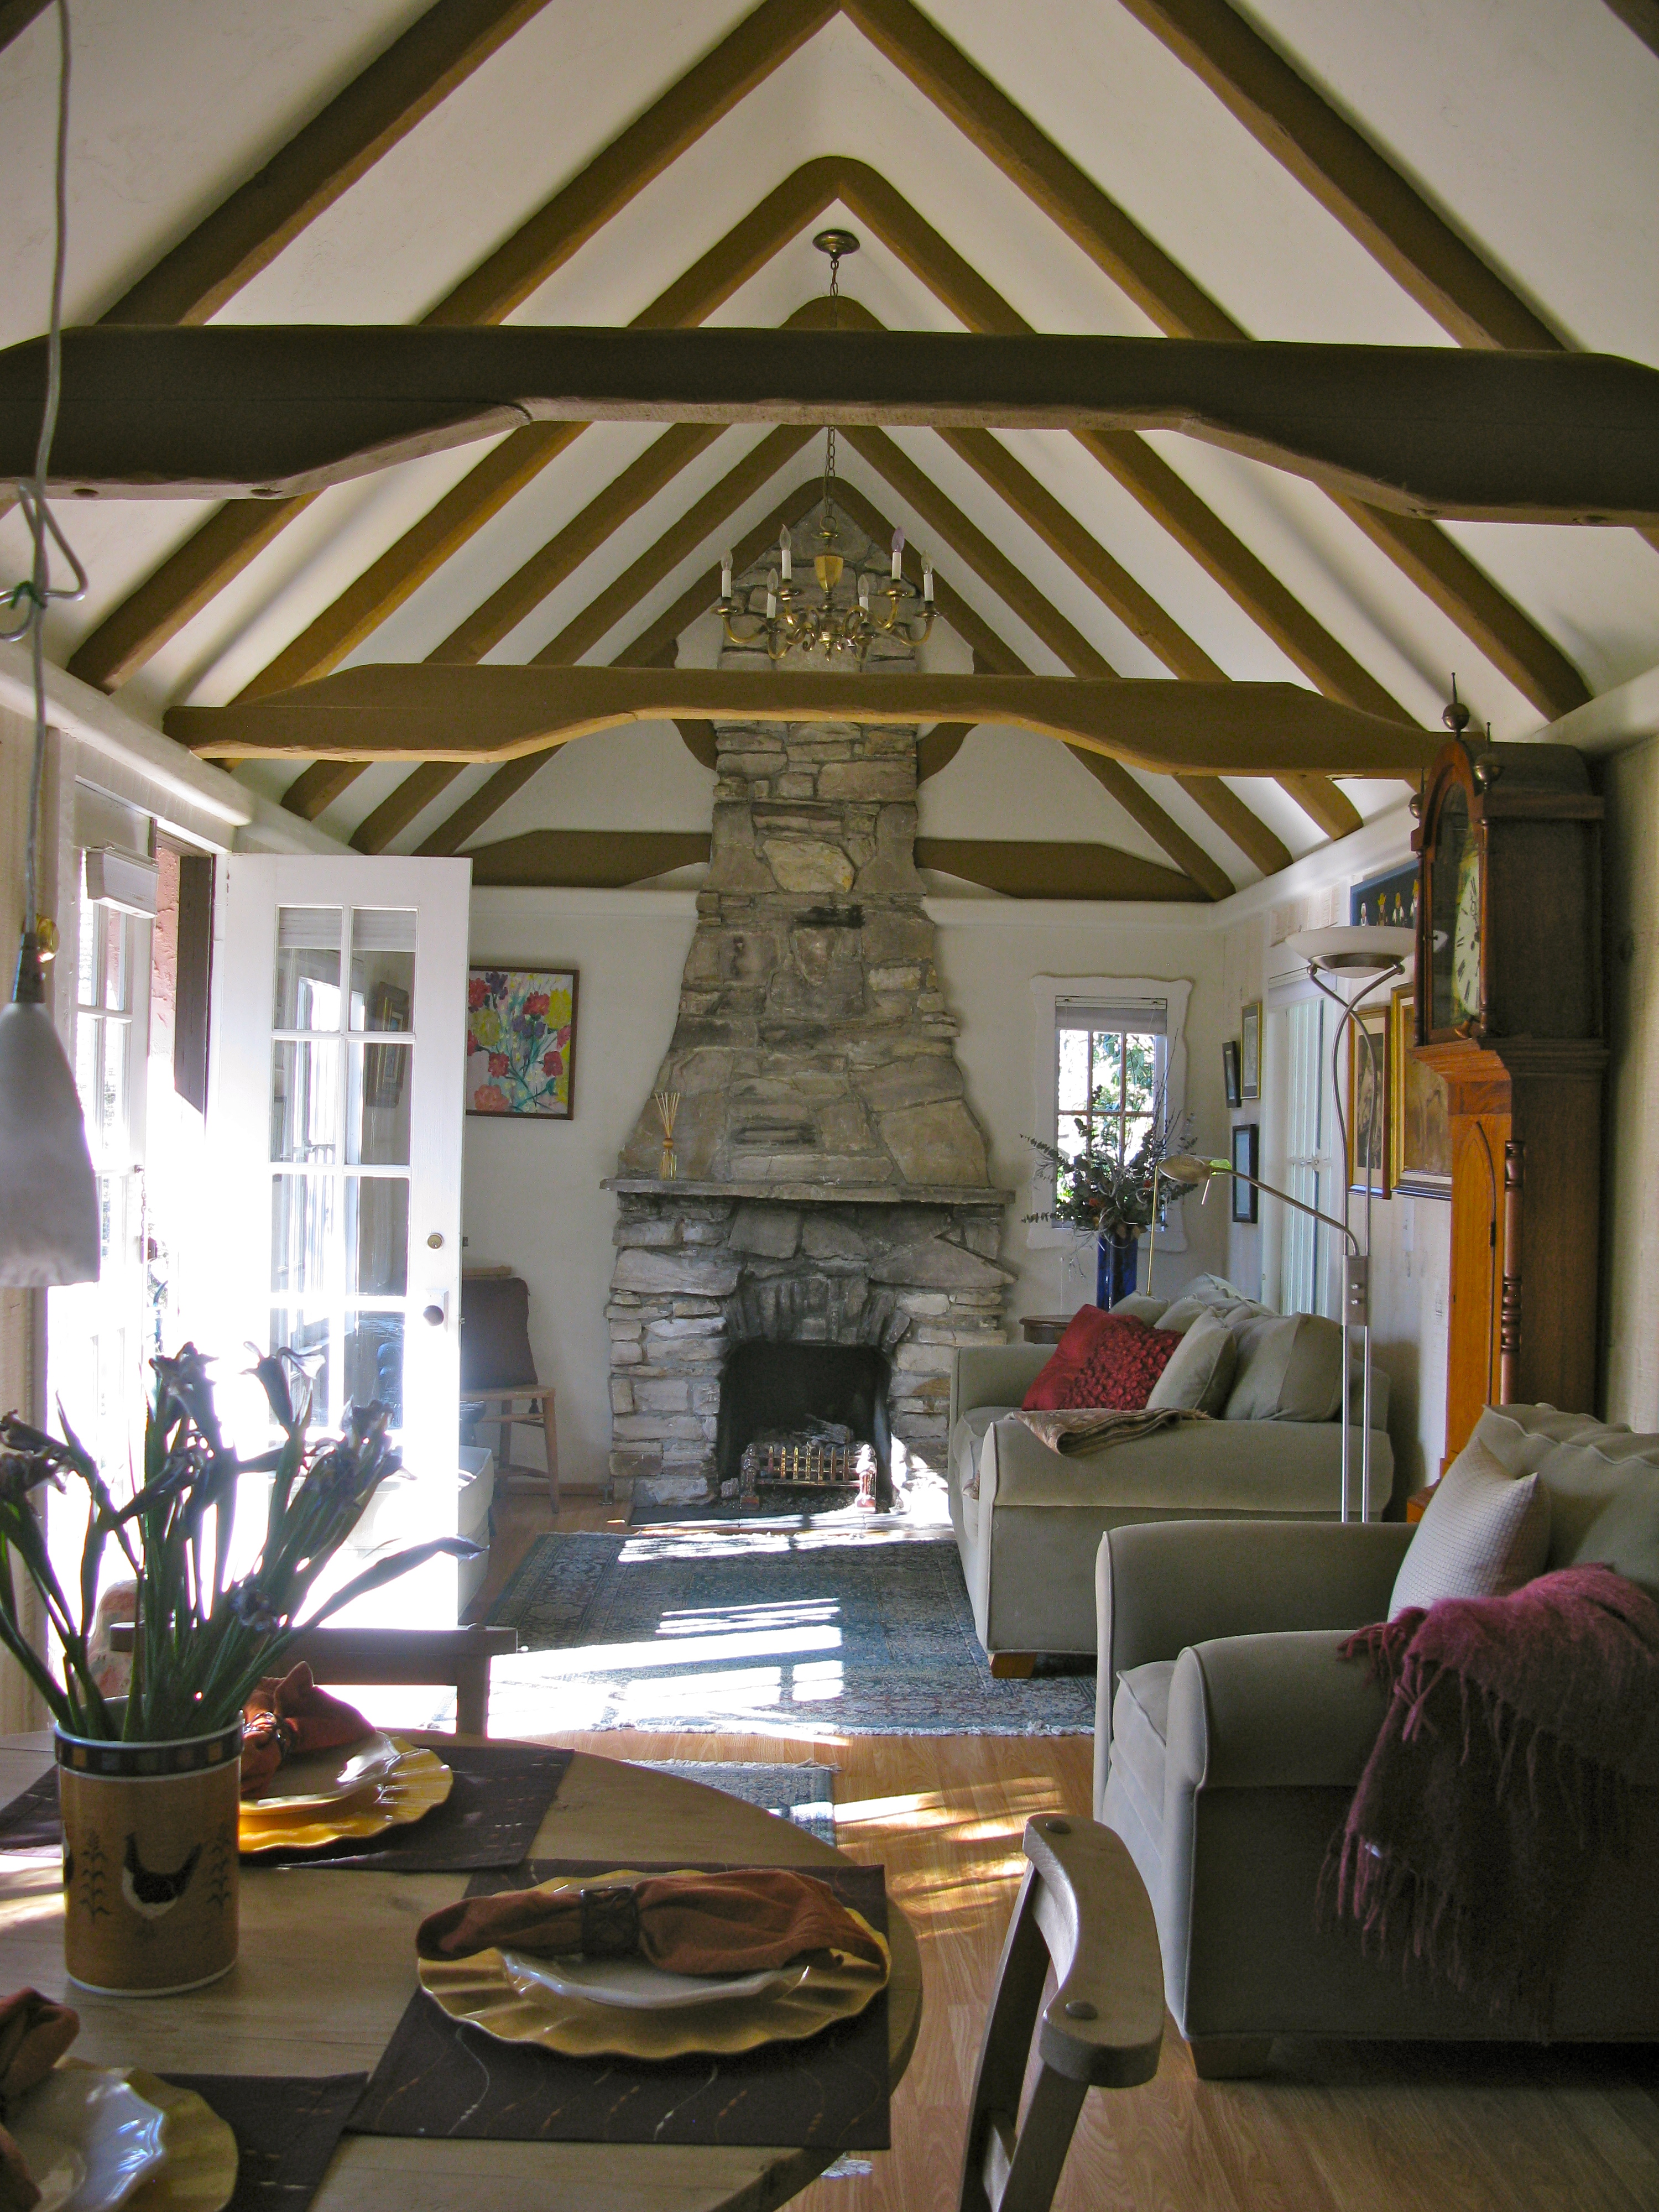 Interiors This Is My Kind Of Log Cabin See Evan: HUGH COMSTOCK'S PINK AND BROWNE COTTAGE